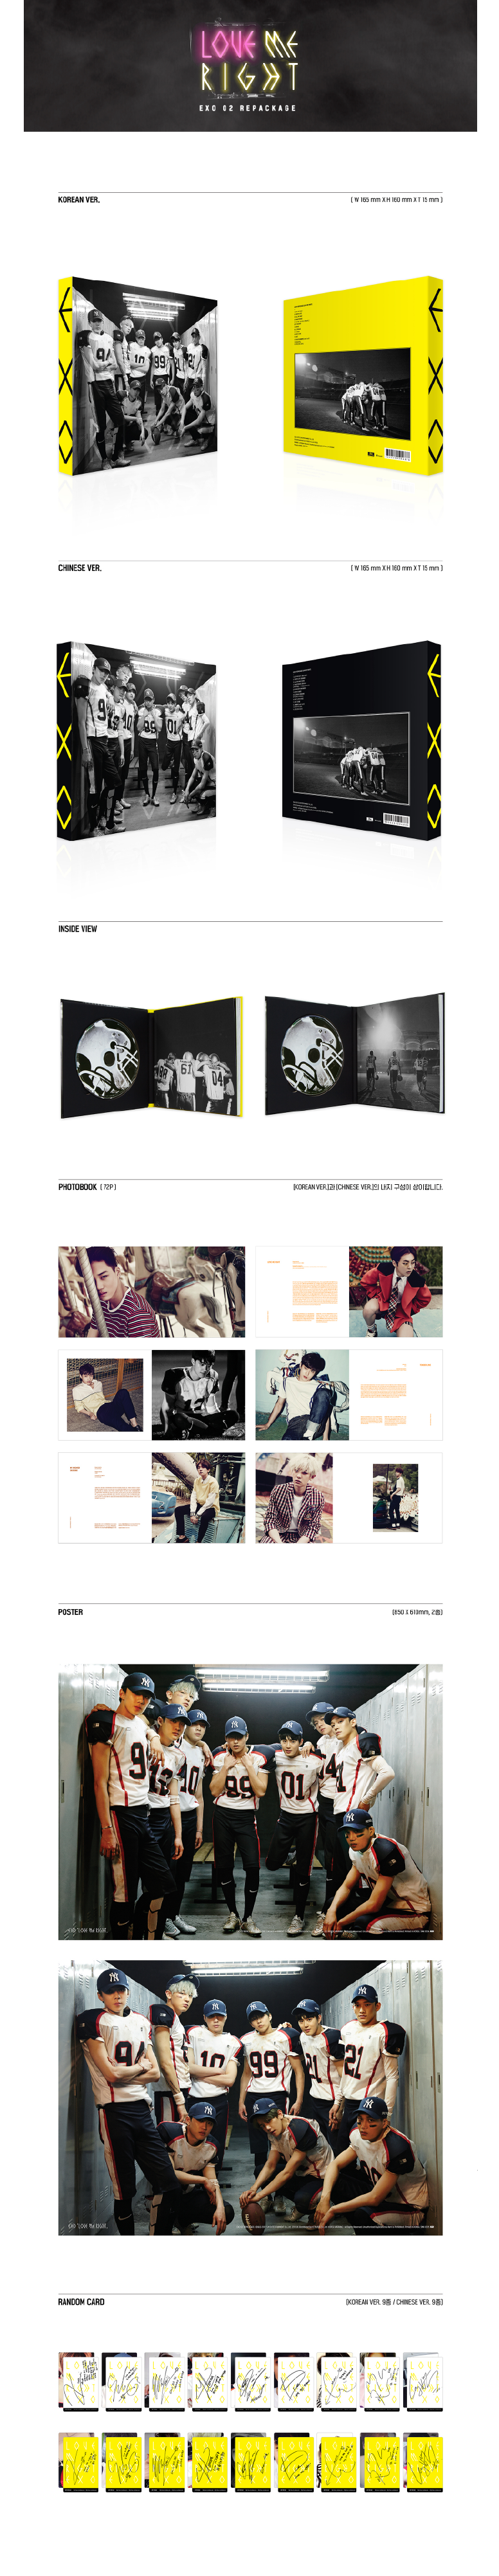 EXO - 2nd Full Album Repackage LOVE ME RIGHT (Chinese - Korean Ver.) Infographic